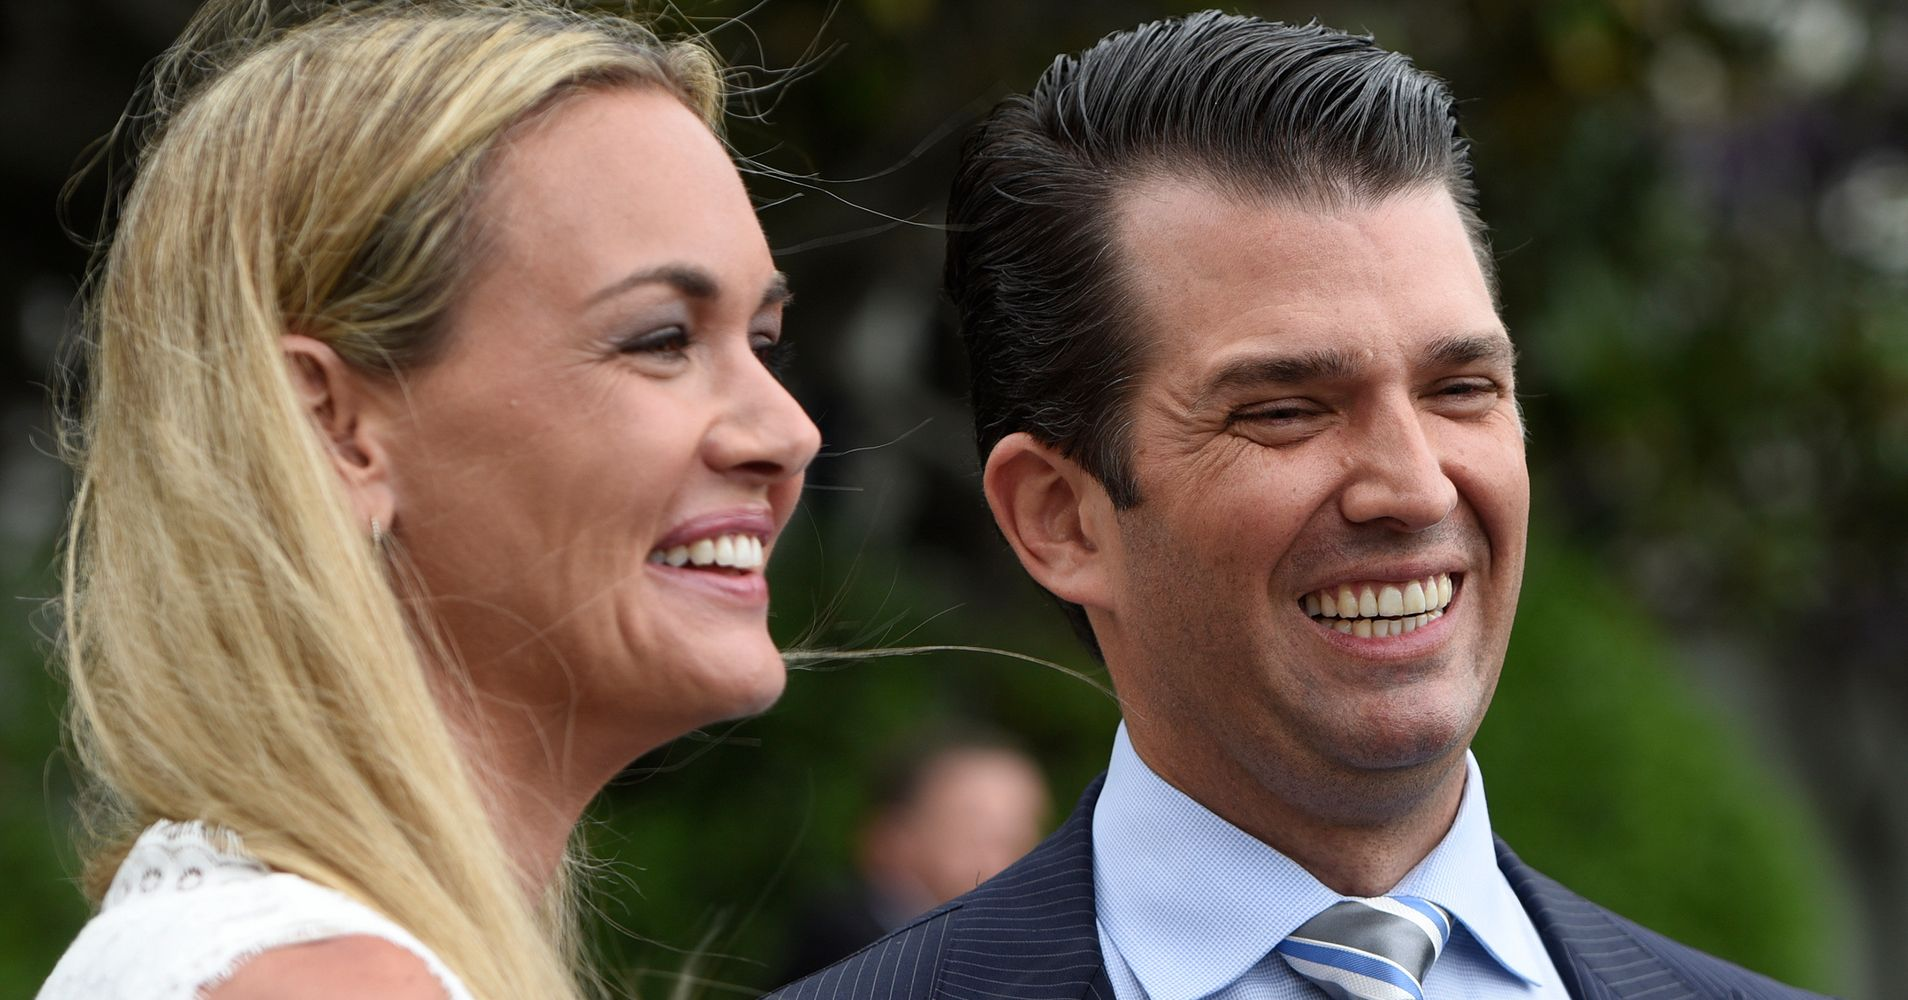 Vanessa Trump Files For Divorce From Donald Trump Jr.